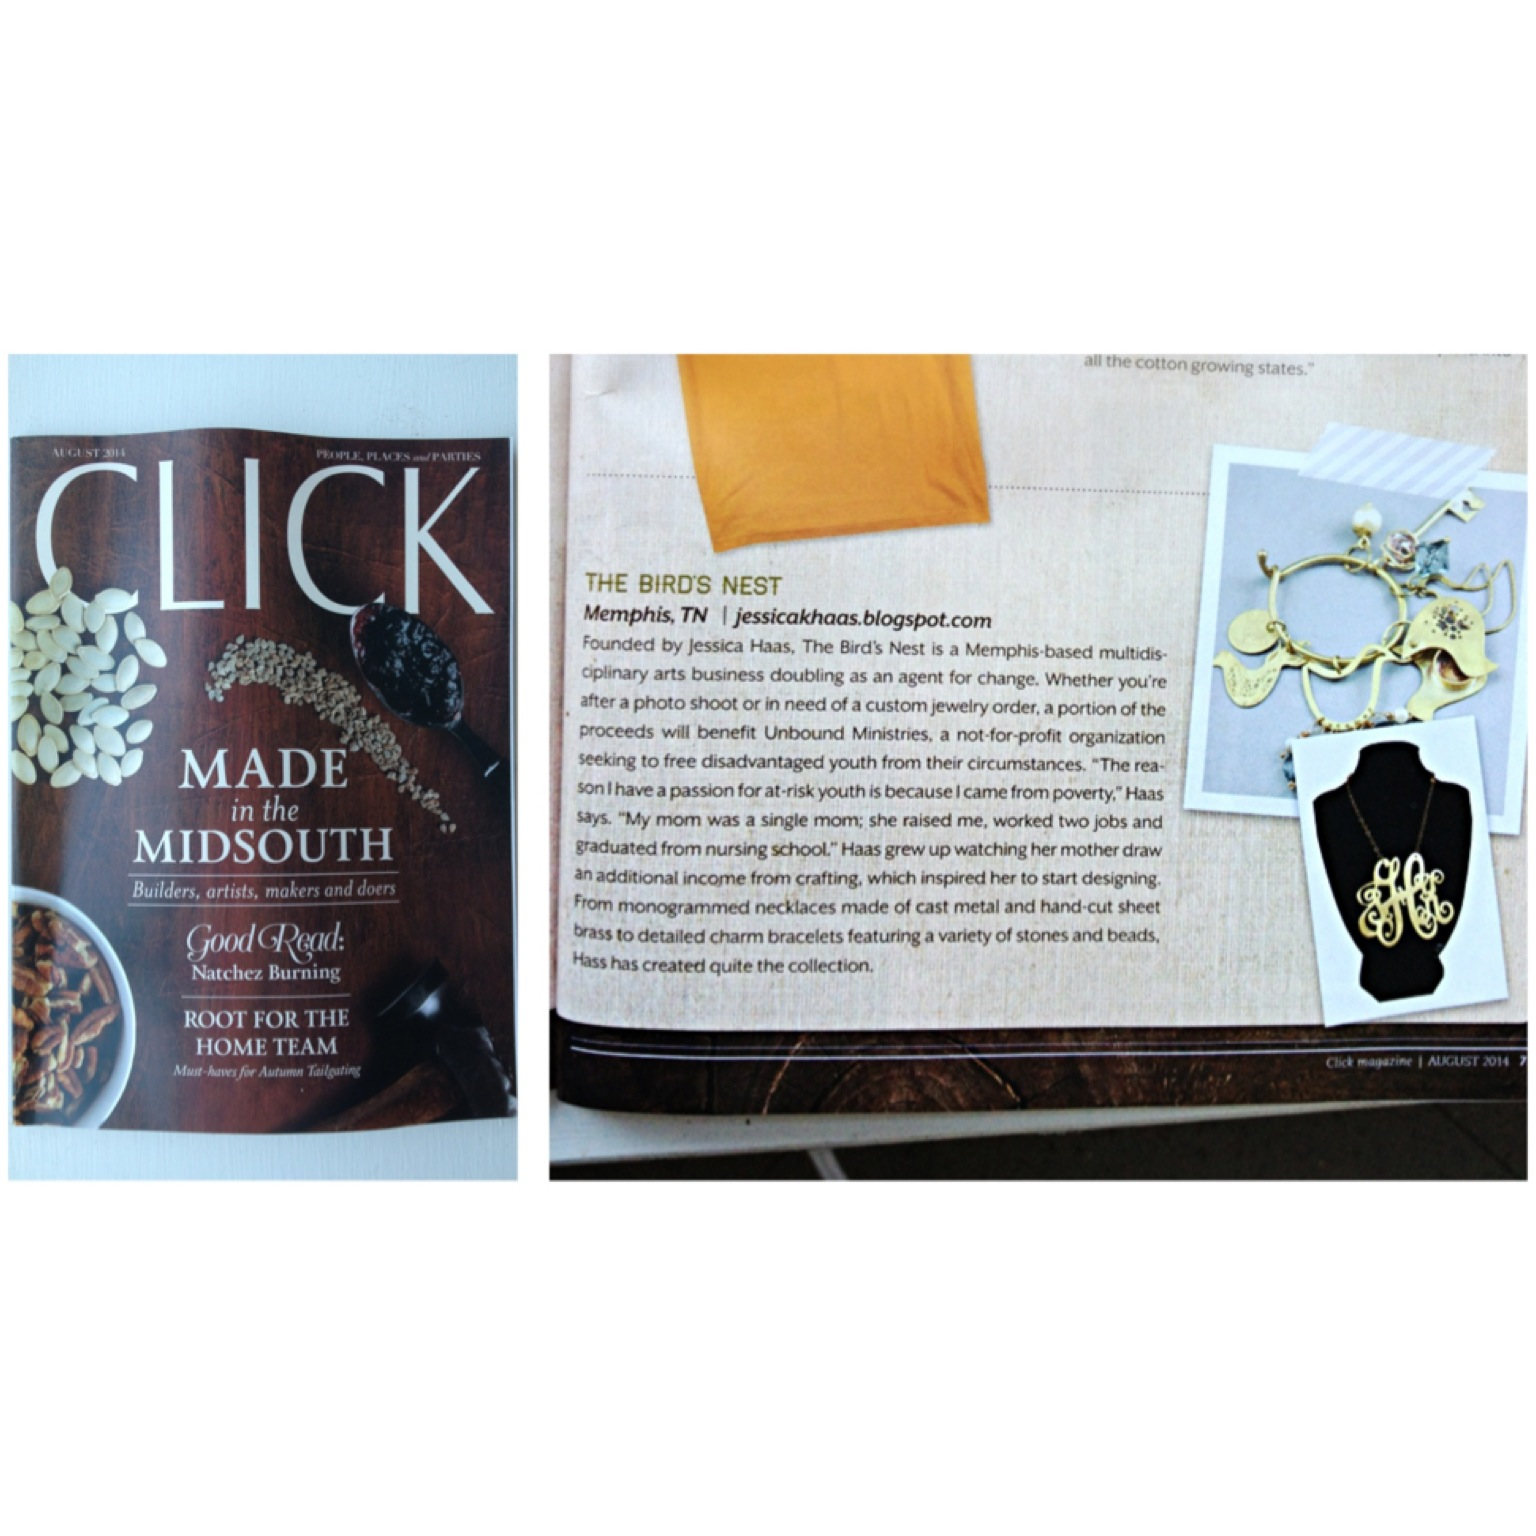 The Birds Nest Co. is in CLICK mag!